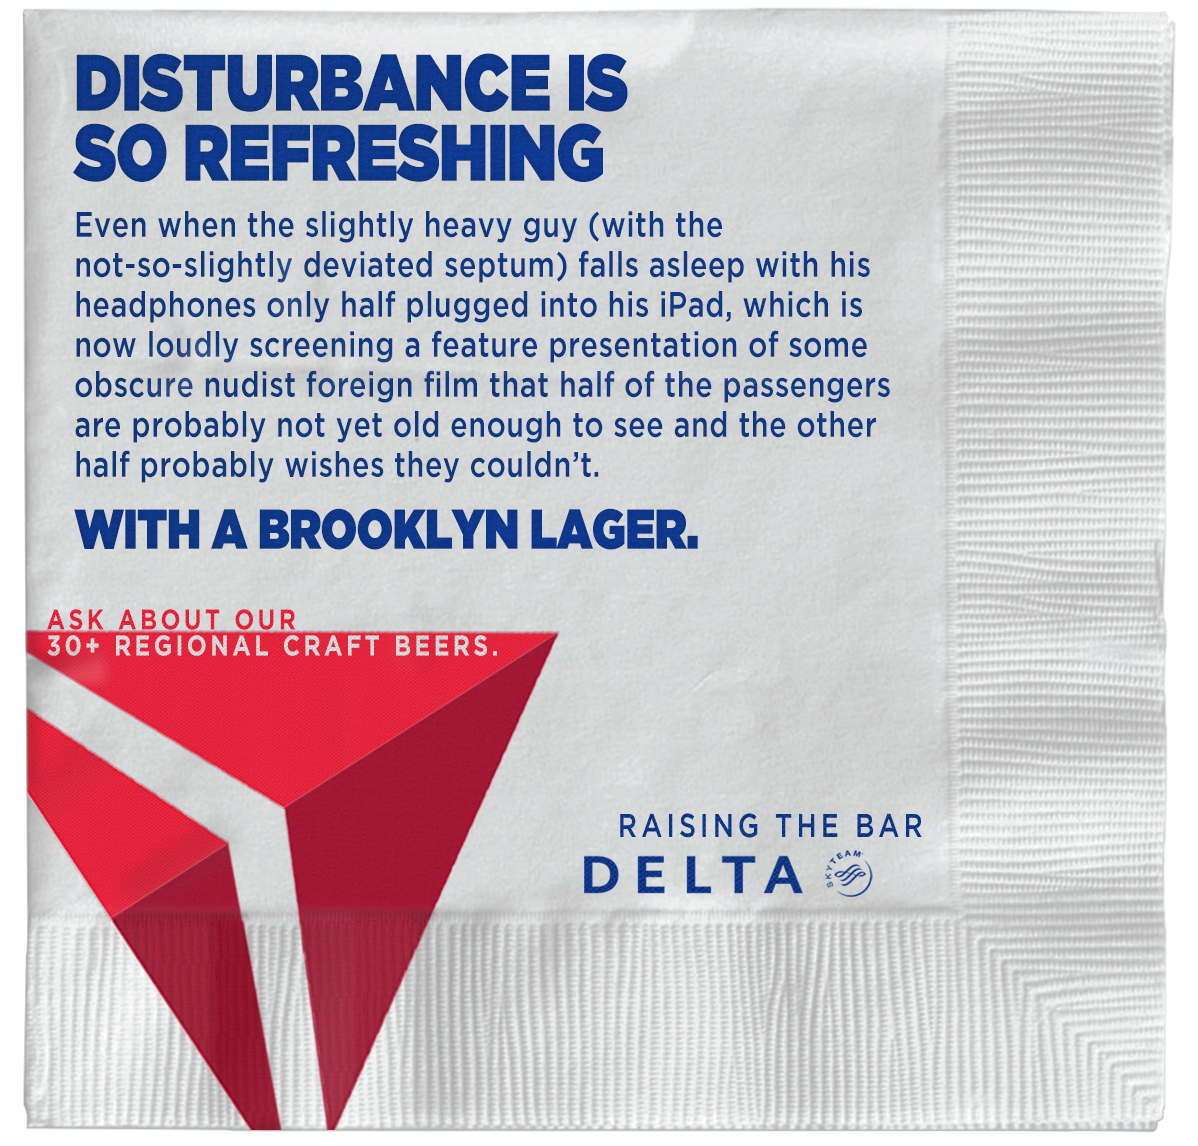 Delta Direct Ad - Raising the Bar - Disturbance